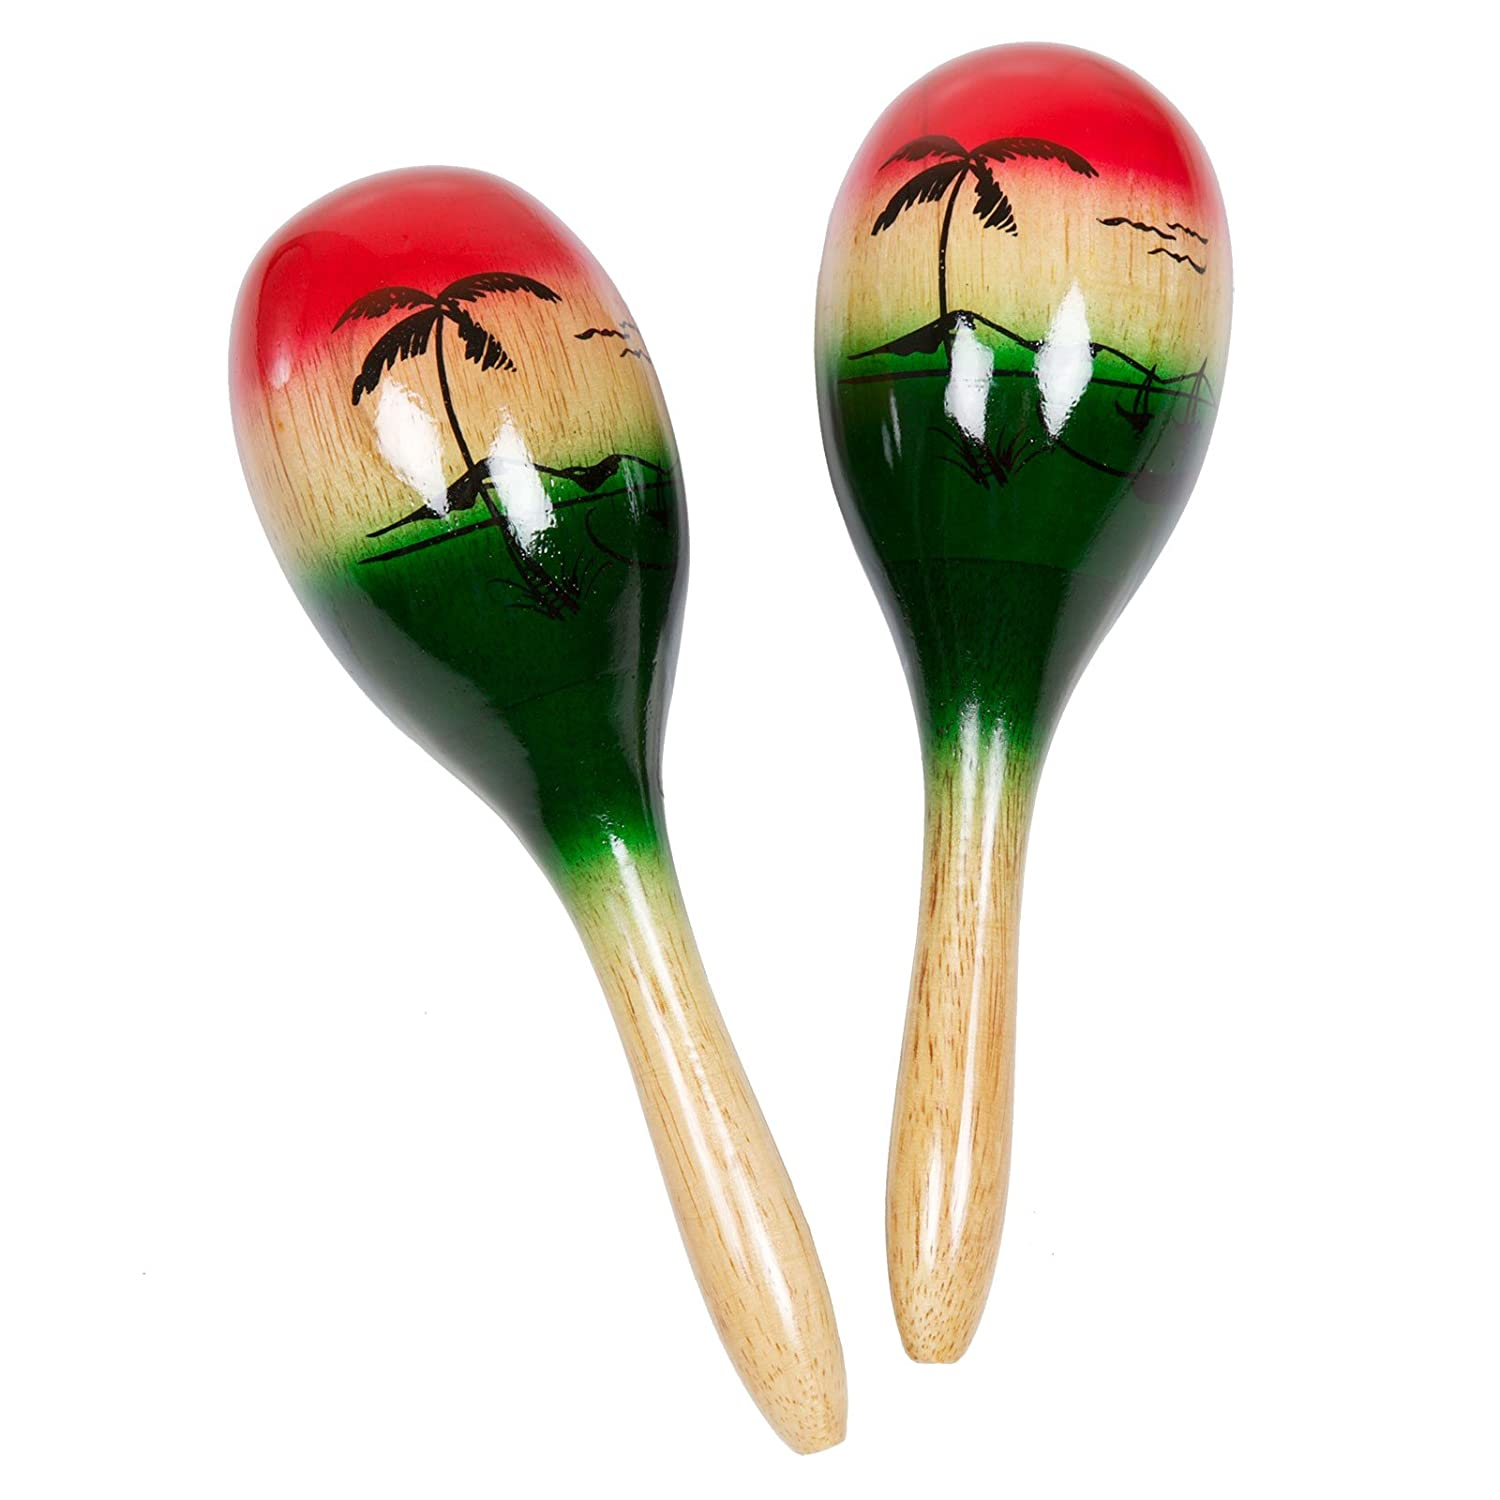 X8 Drums & Percussion X8-Mar-TRP 11-Inch Tropical Wood Maracas